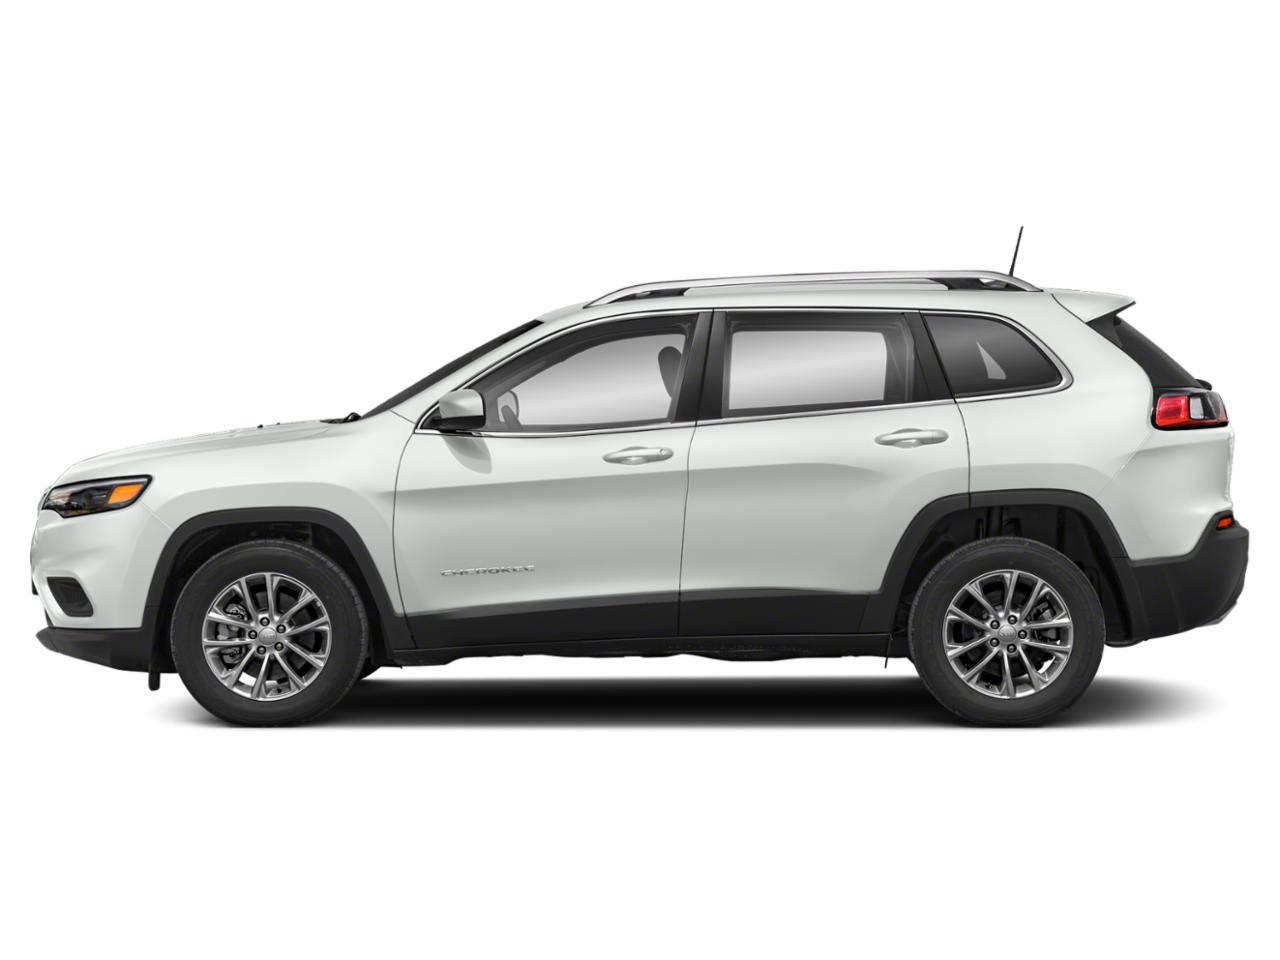 Used 2019 Jeep Cherokee Limited with VIN 1C4PJMDN0KD383278 for sale in Willmar, Minnesota